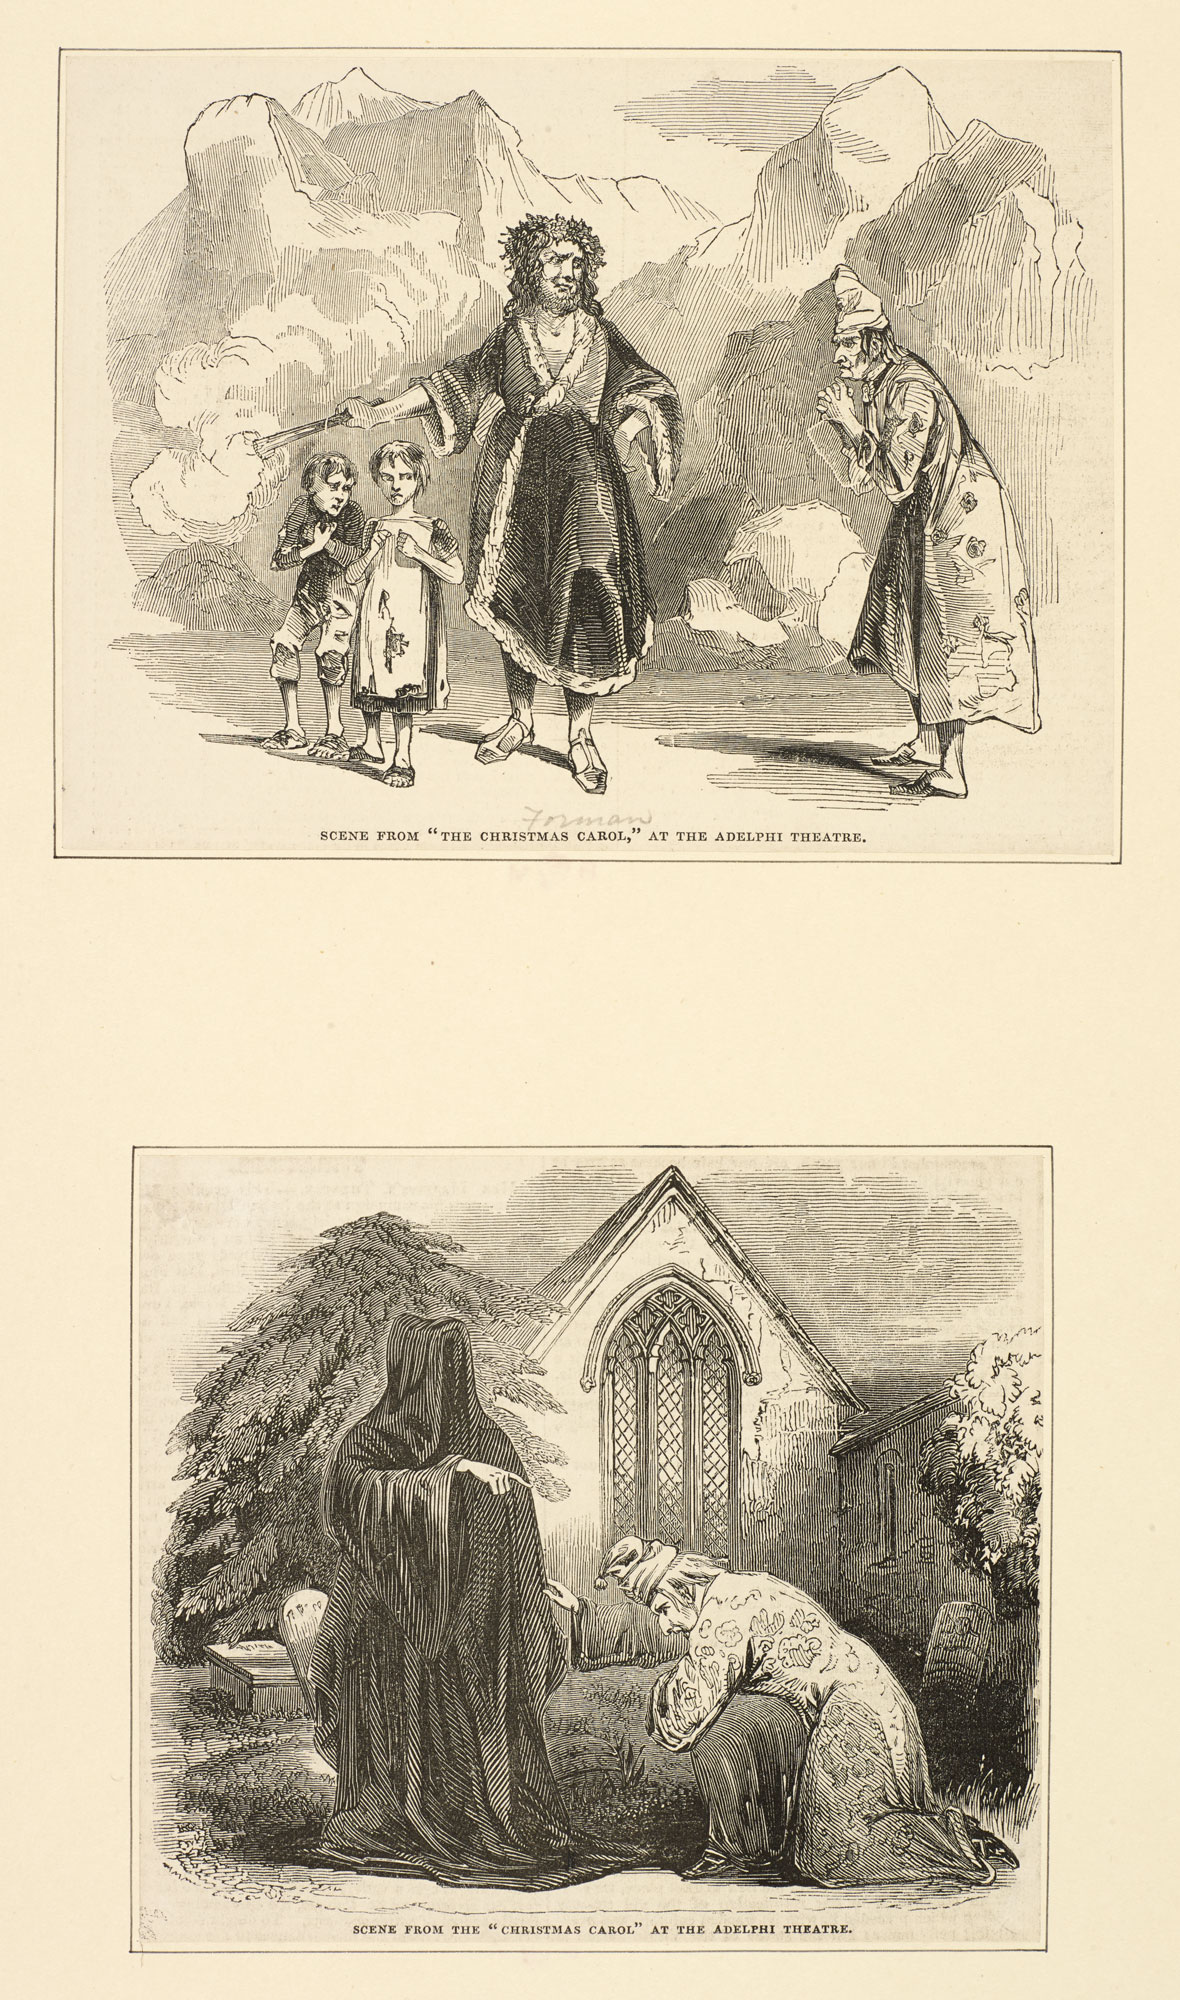 Two engraved scenes from 'A Christmas Carol' at the Adelphi Theatre [page: 121]